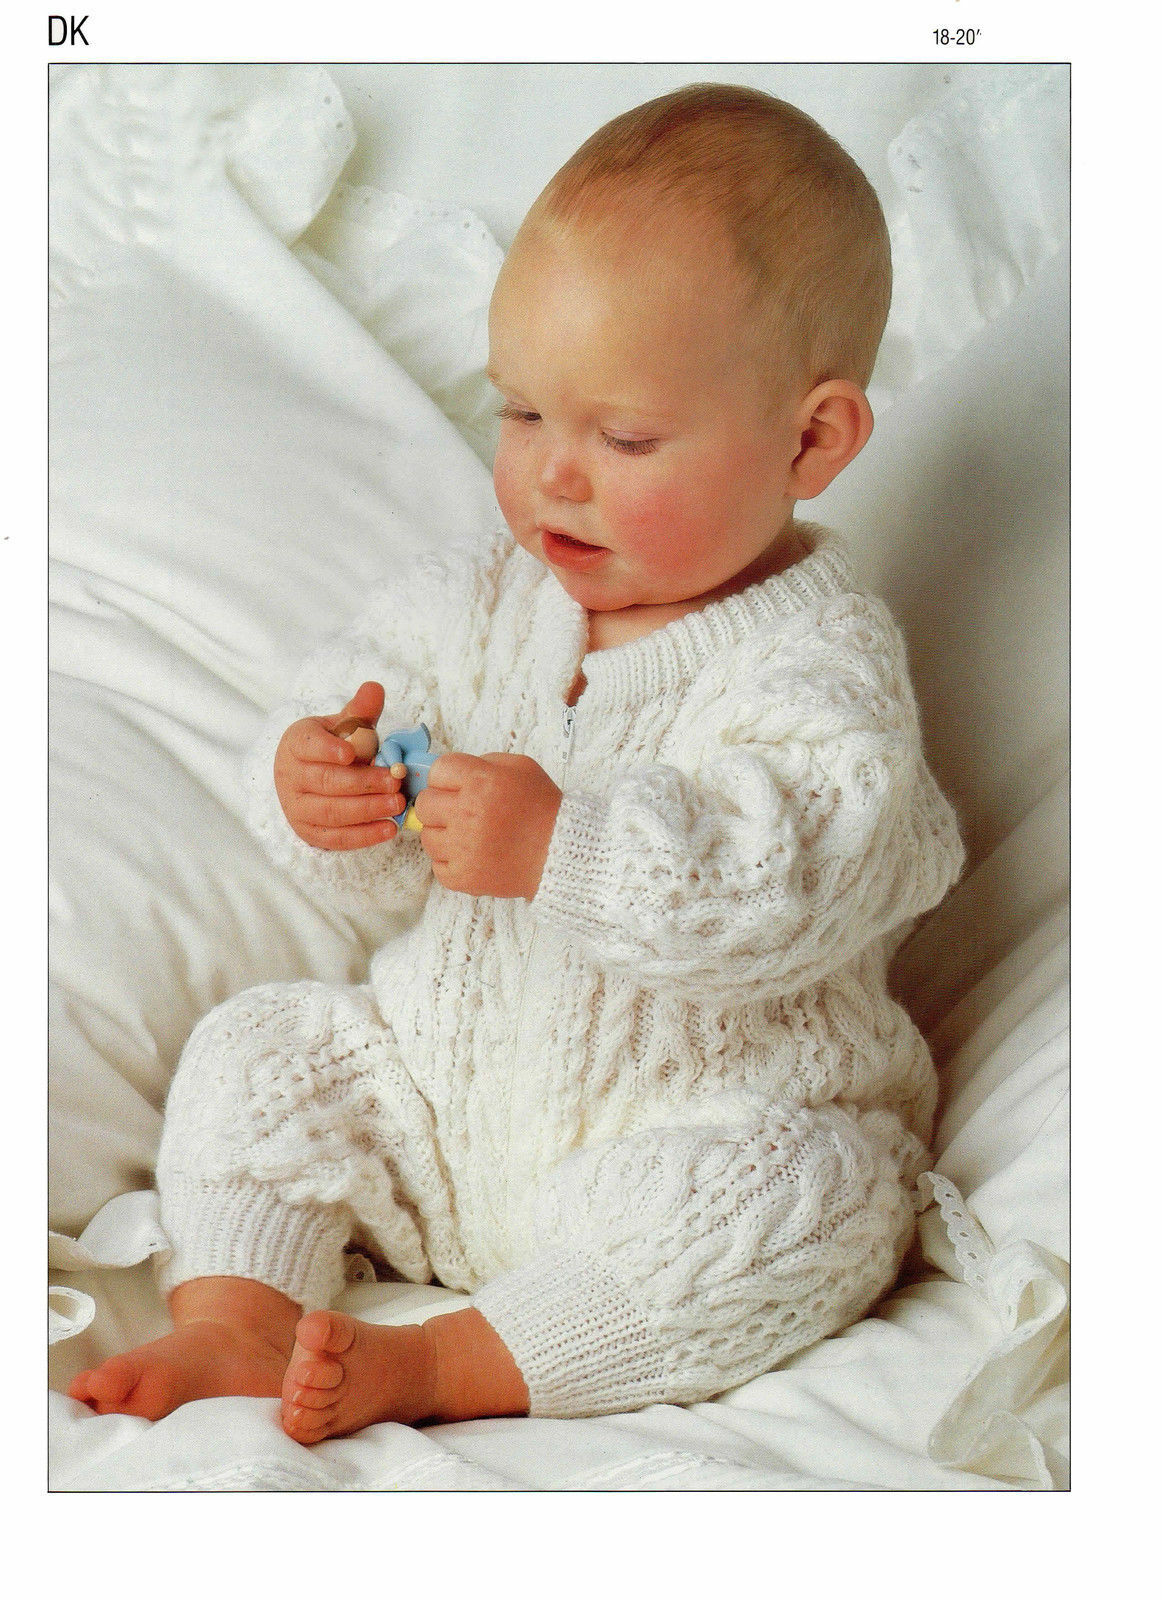 Knitting Pattern Baby All In One : Baby Childs All In One DK Knitting Pattern 99p   ?0.99 ...